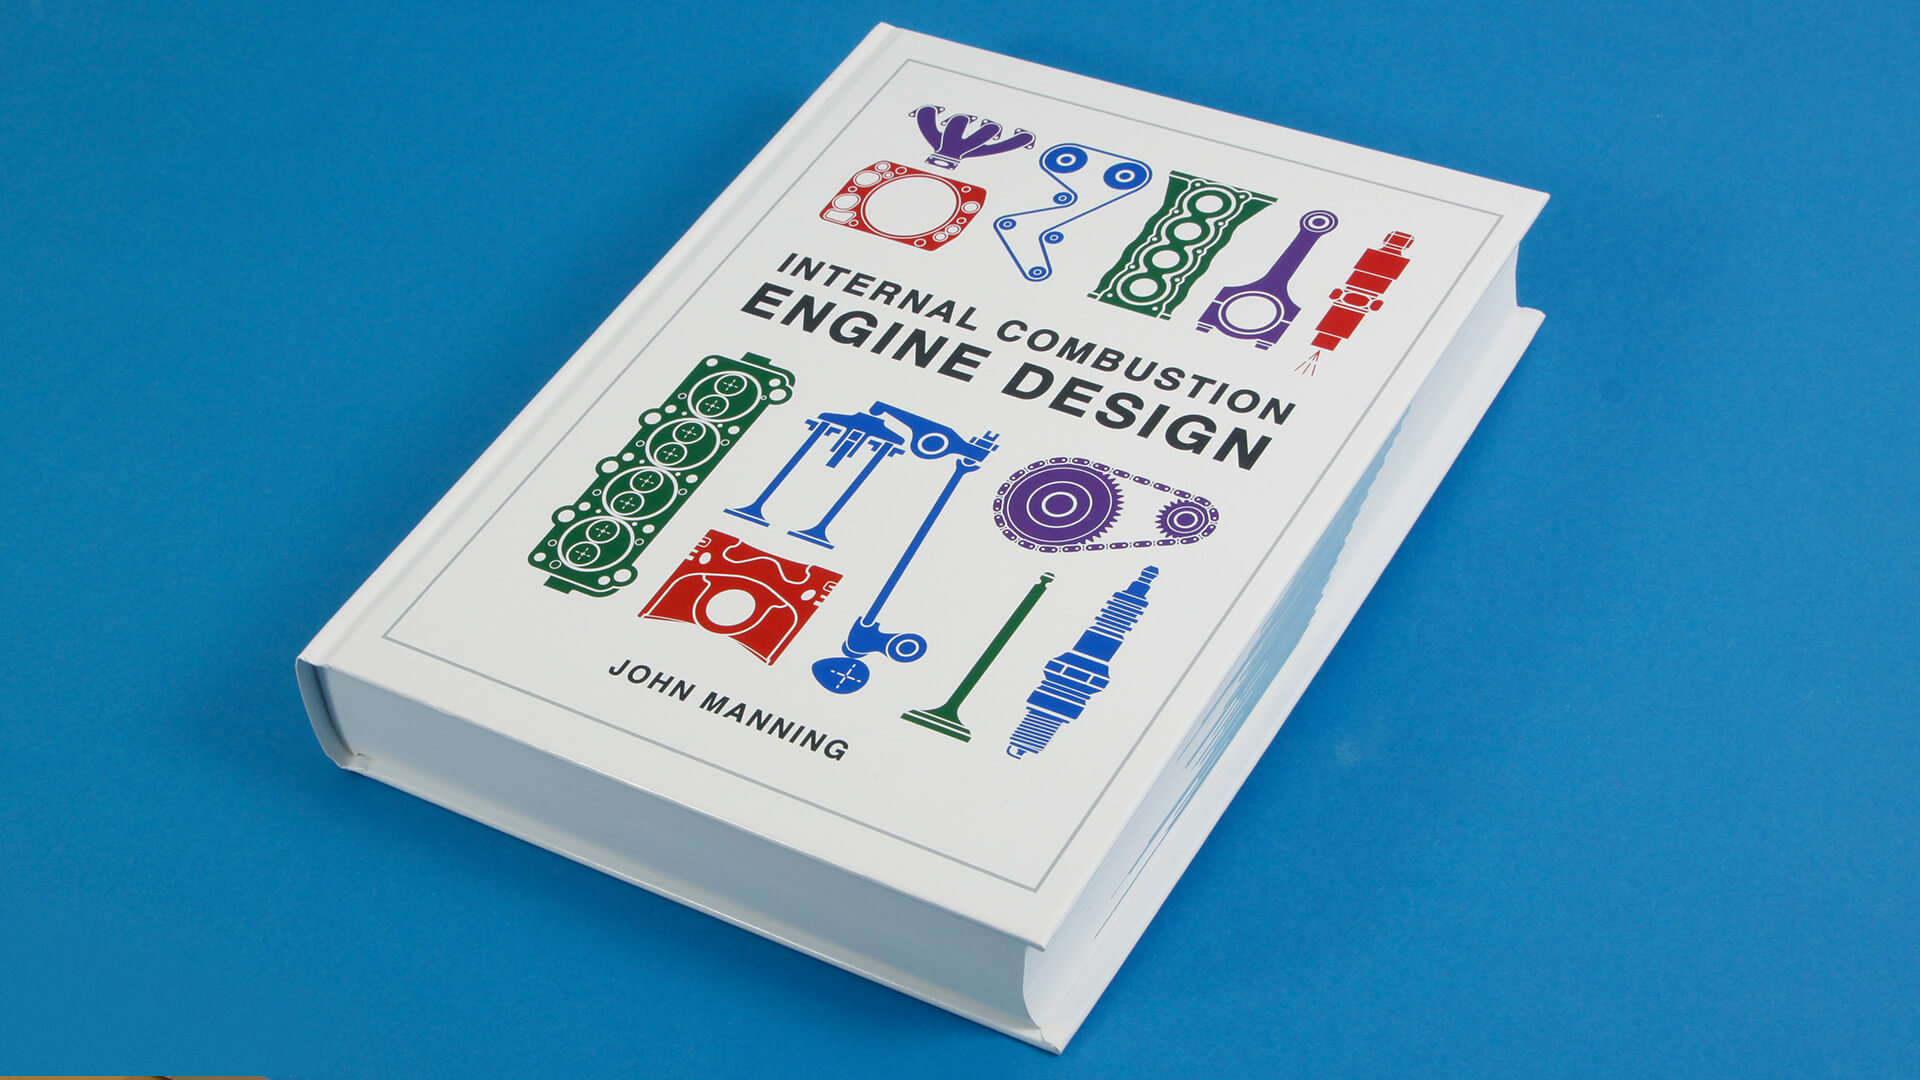 publications_internalcombustionenginedesign_cover.jpg